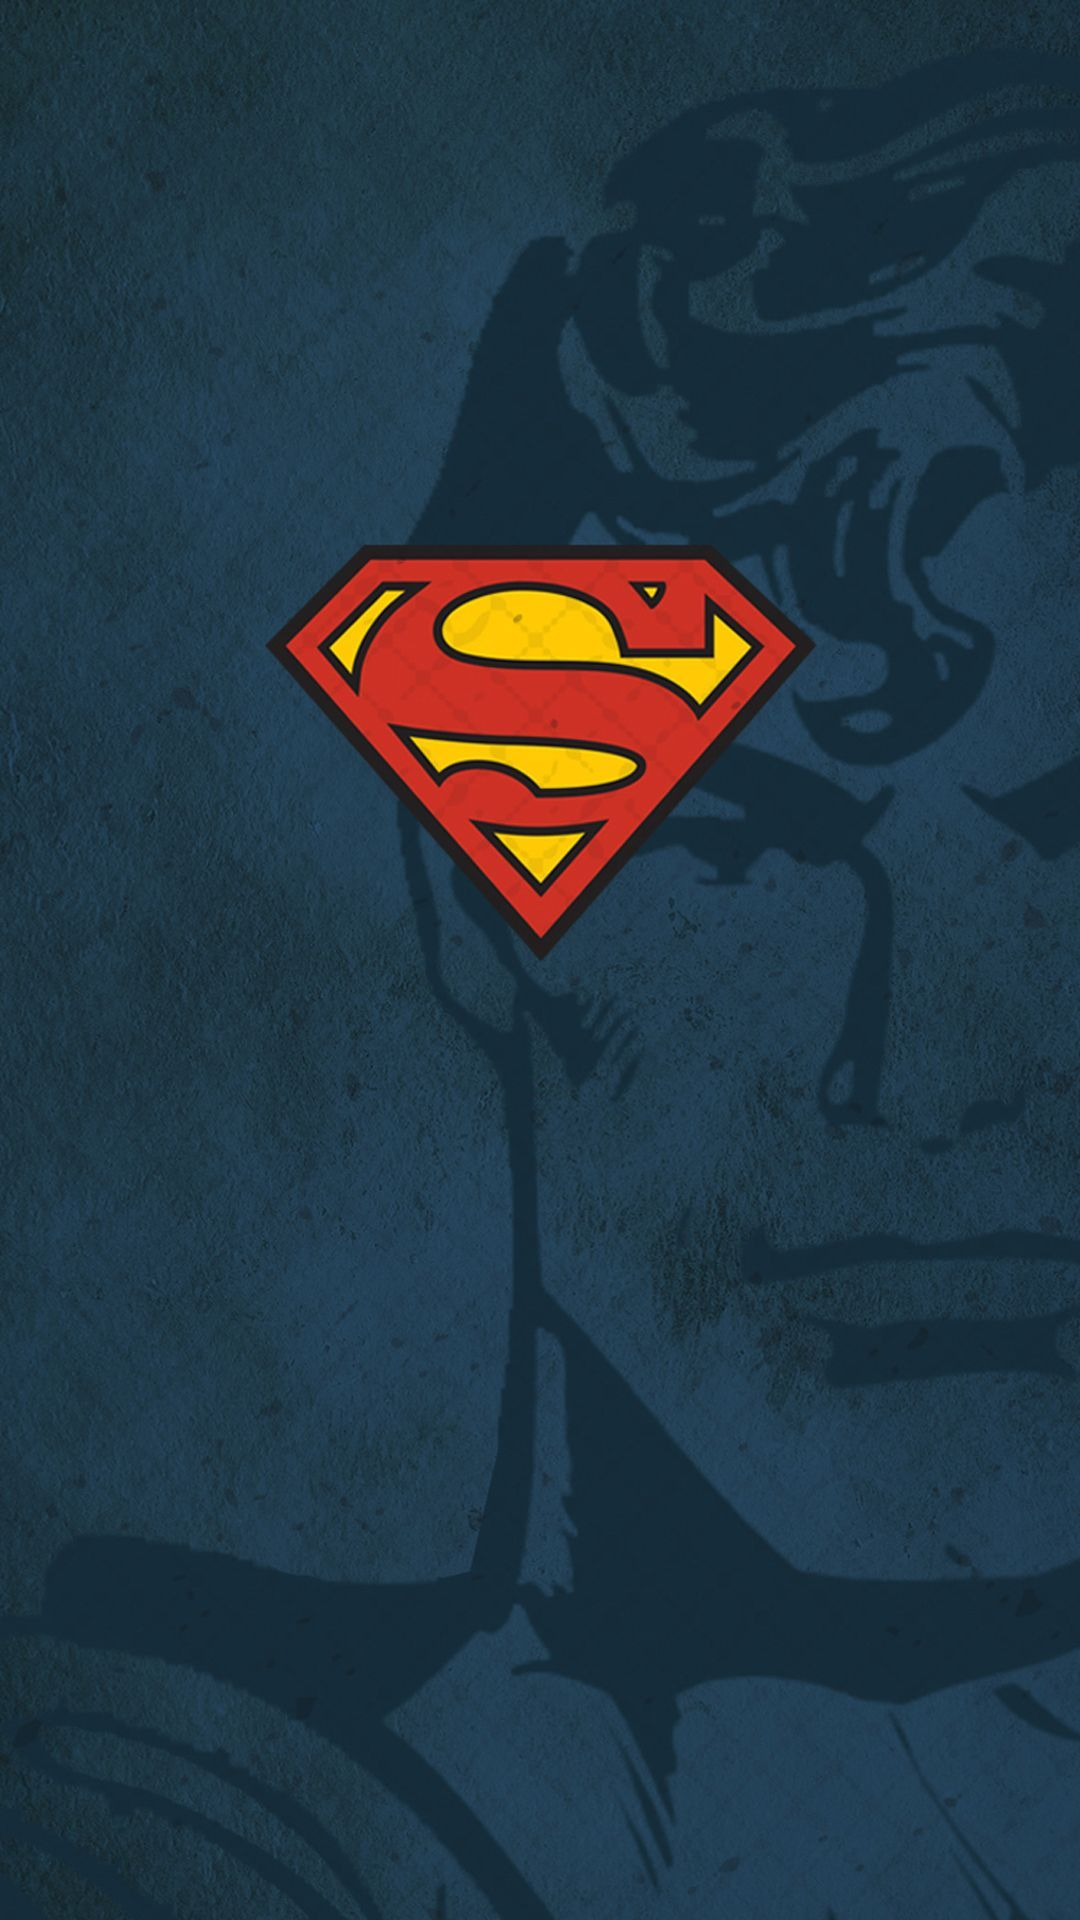 Superman Iphone Wallpapers Top Free Superman Iphone Backgrounds Wallpaperaccess